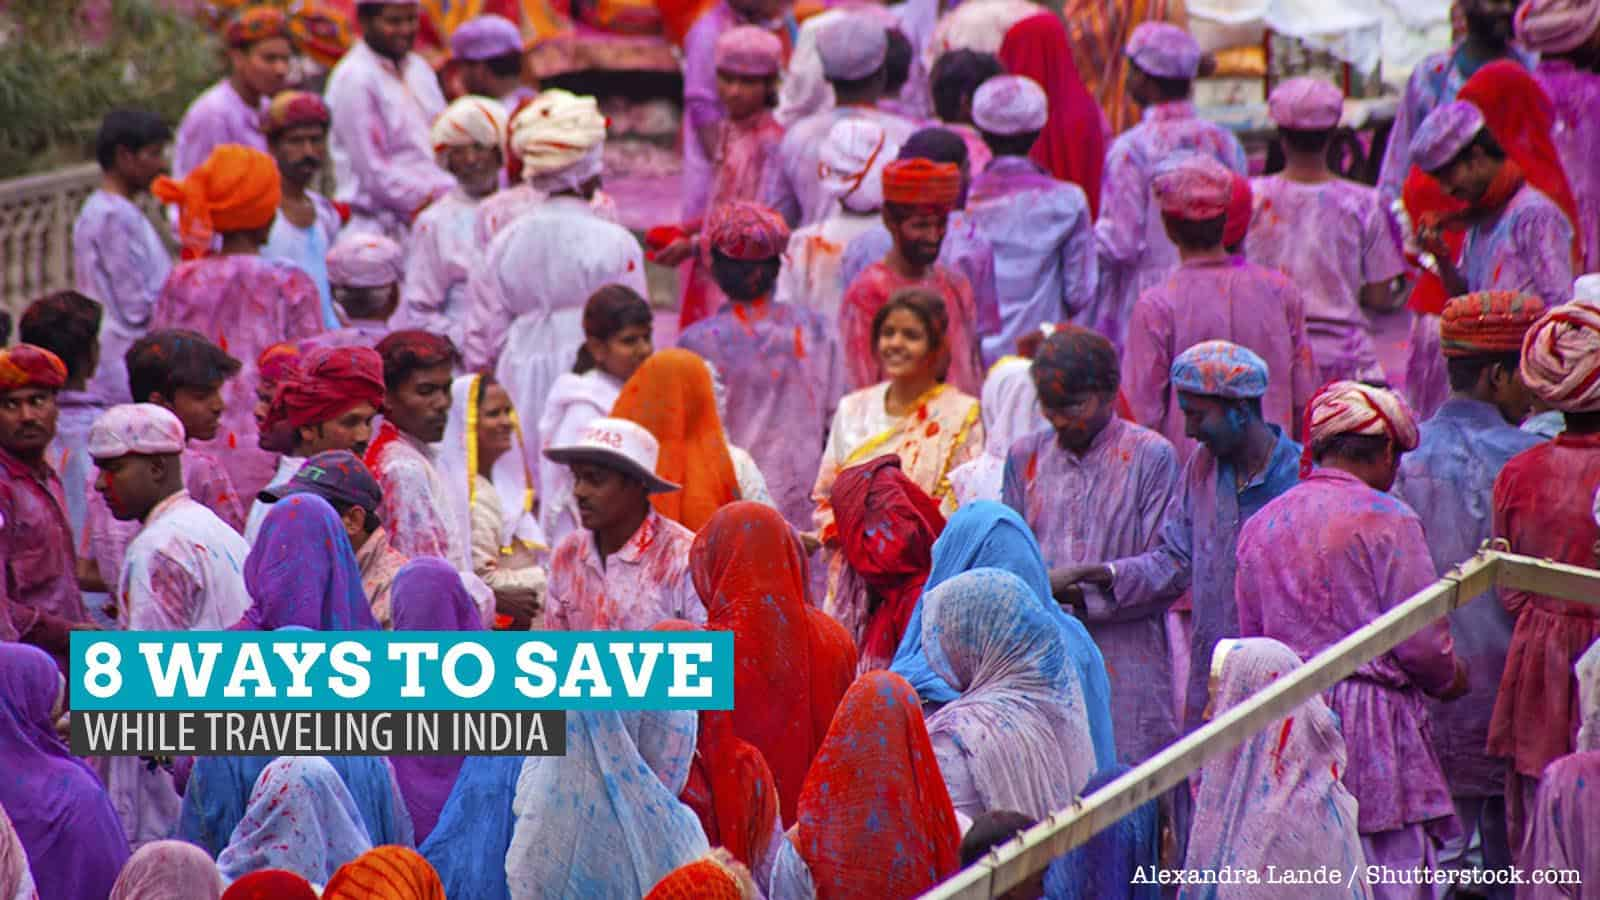 Ways to Save in India